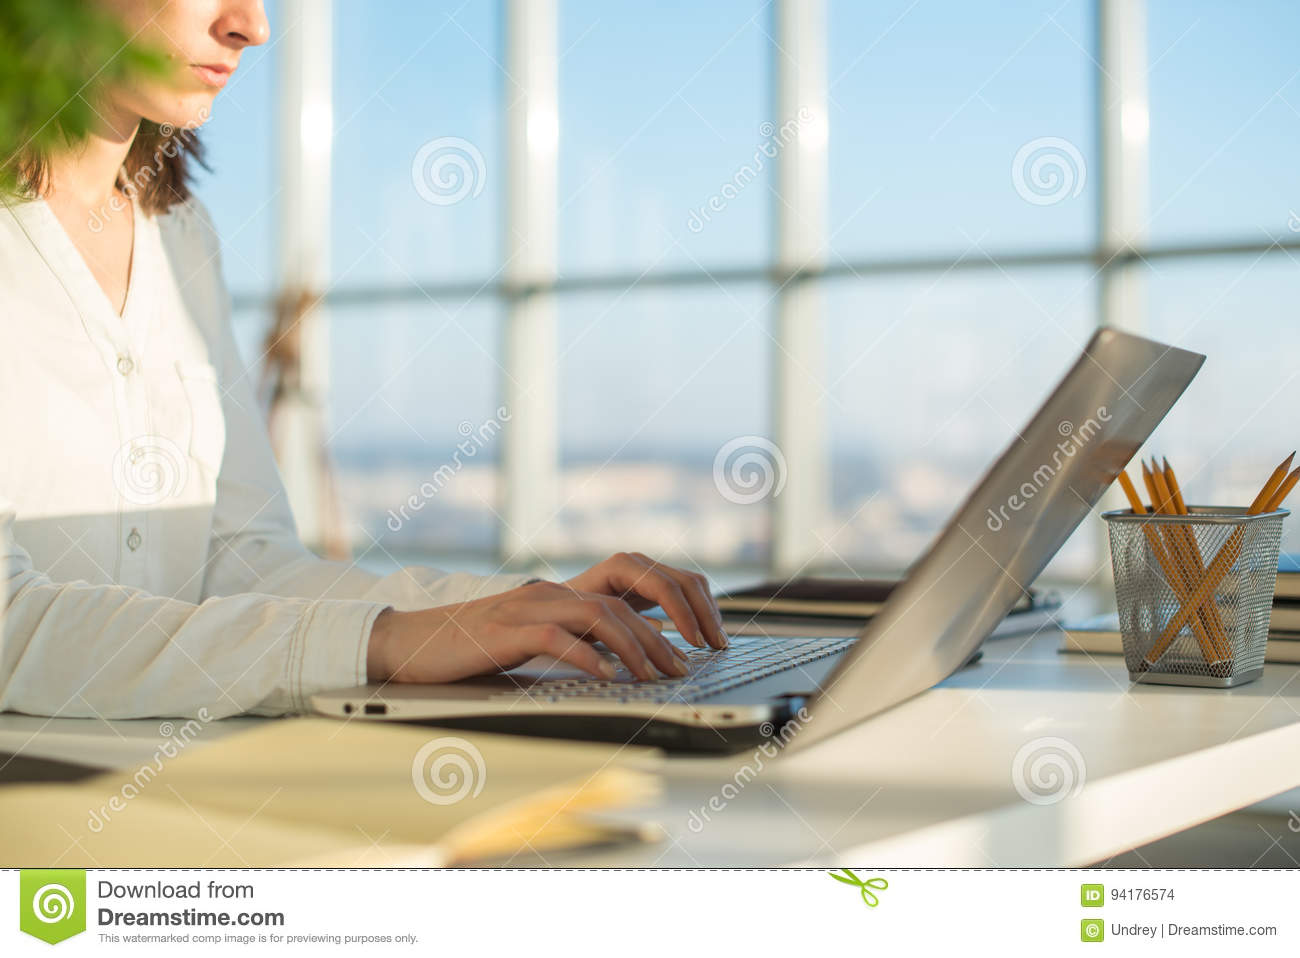 Businesswoman working at home using laptop, studying business